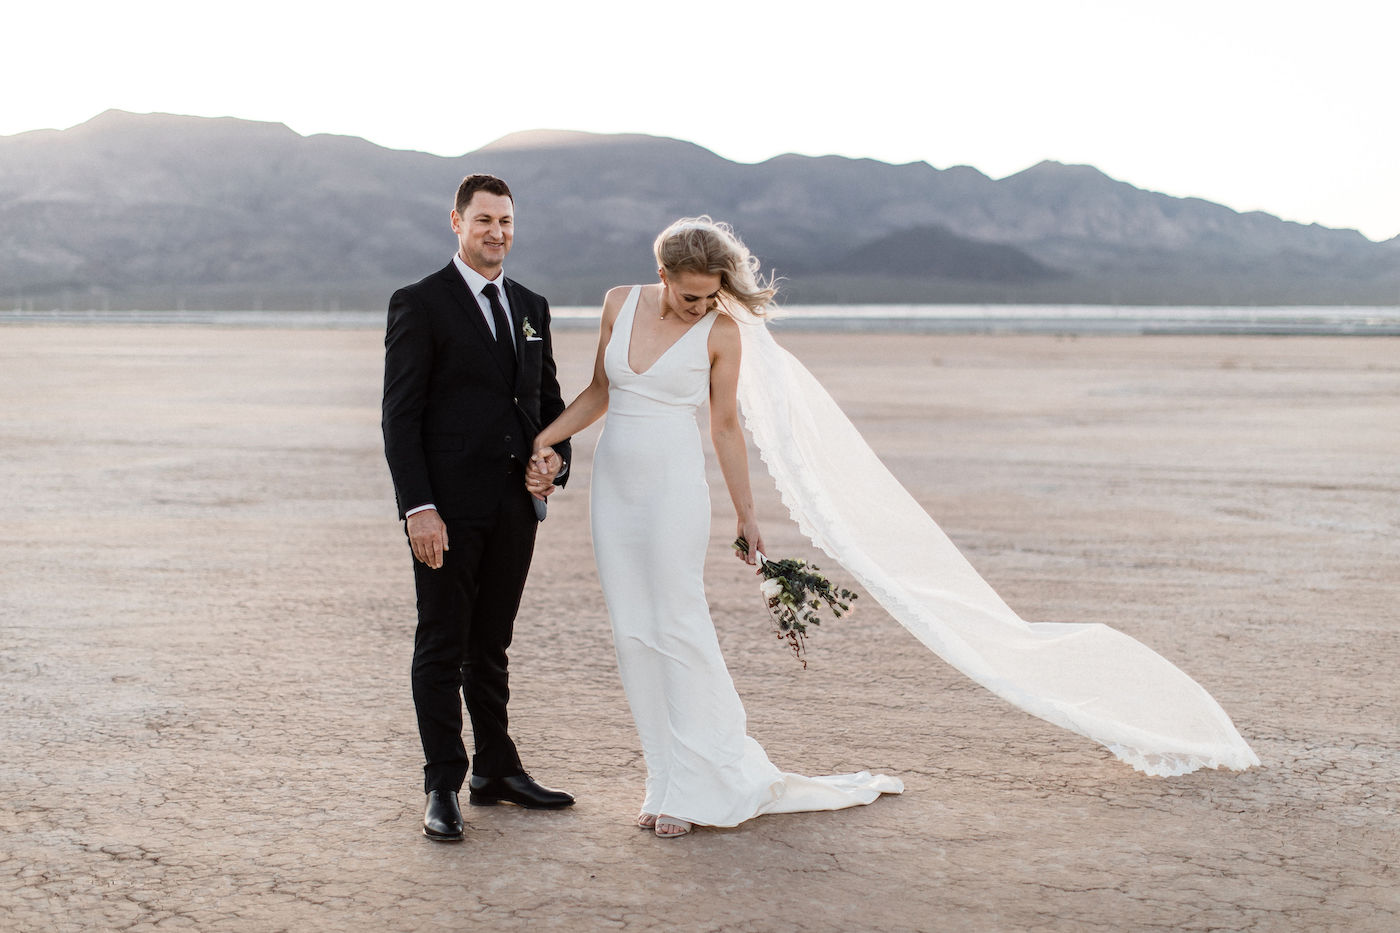 intimate flora pop las vegas elopement at dry lake bed00026.jpg